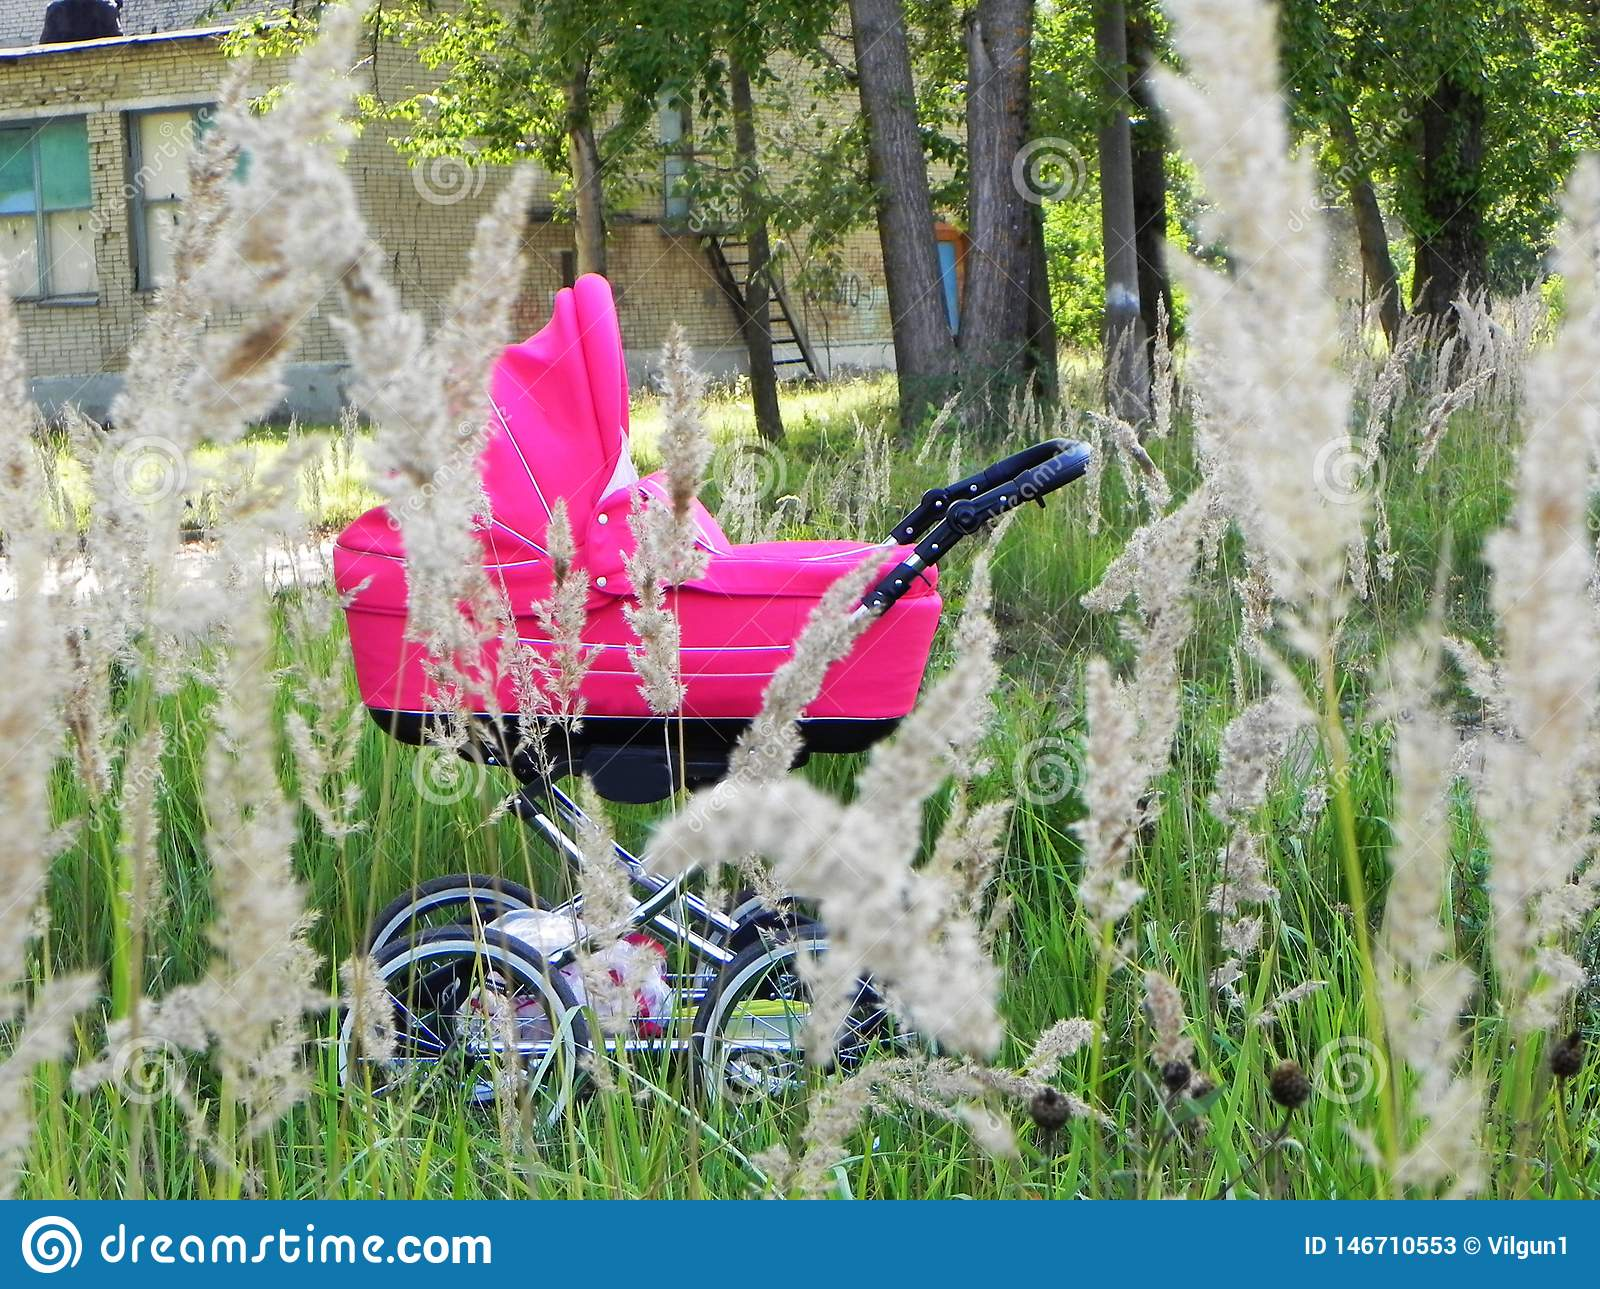 A small child in a pram. Beautiful stroller on the background of nature. Details and close-up.